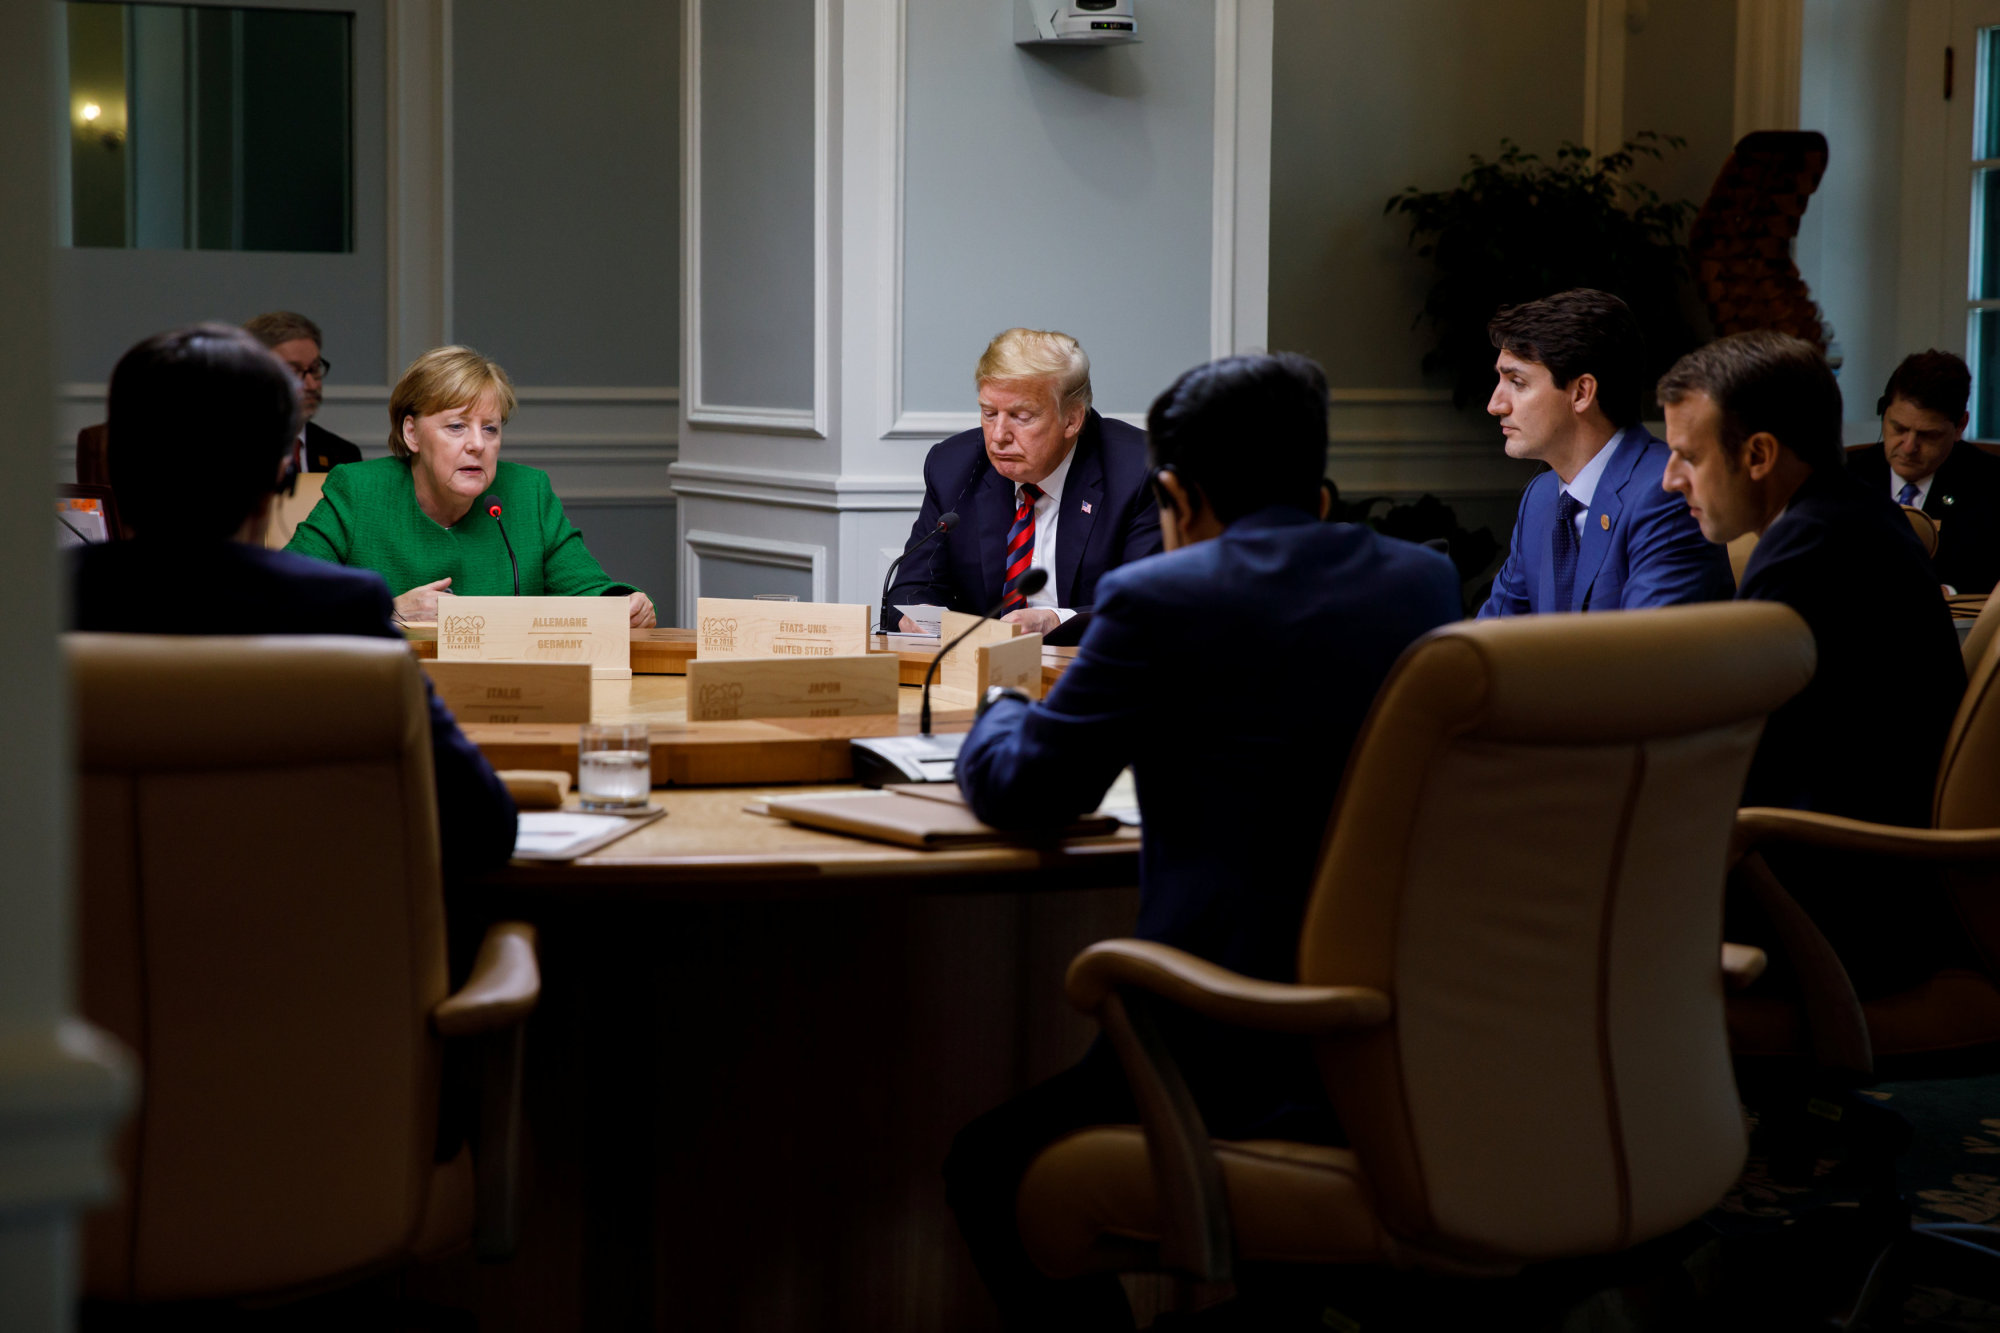 Canada's Prime Minister Justin Trudeau and G7 leaders France's President Emmanuel Macron, Germany's Chancellor Angela Merkel, Prime Minister Shinzo Abe and U.S. President Donald Trump take part in a working session of the G7 meeting in Charlevoix city of La Malbaie, Quebec, Canada on Friday. | PRIME MINISTER'S OFFICE/HANDOUT VIA REUTERS